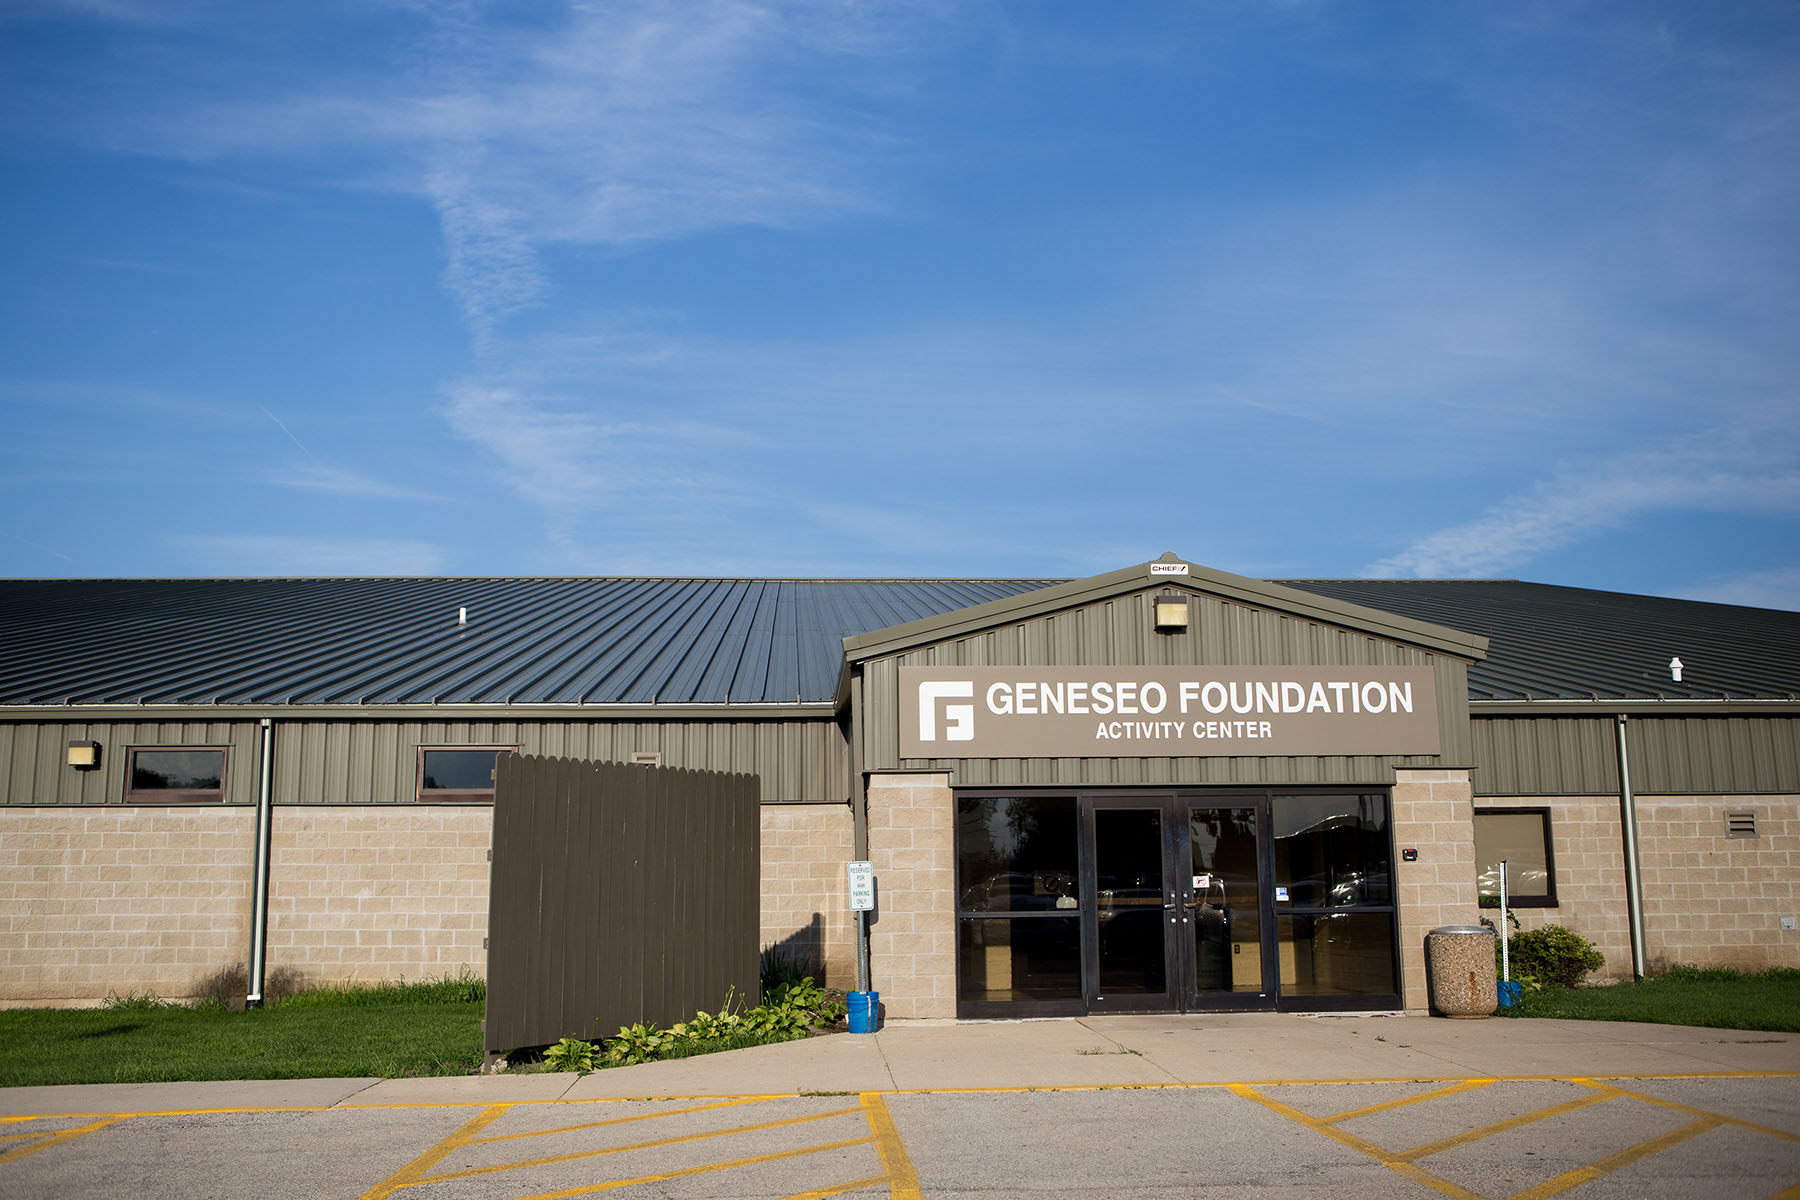 Located right next to Geneseo High School, the Activity Center serves as a fantastic facility for sports and other recreation.